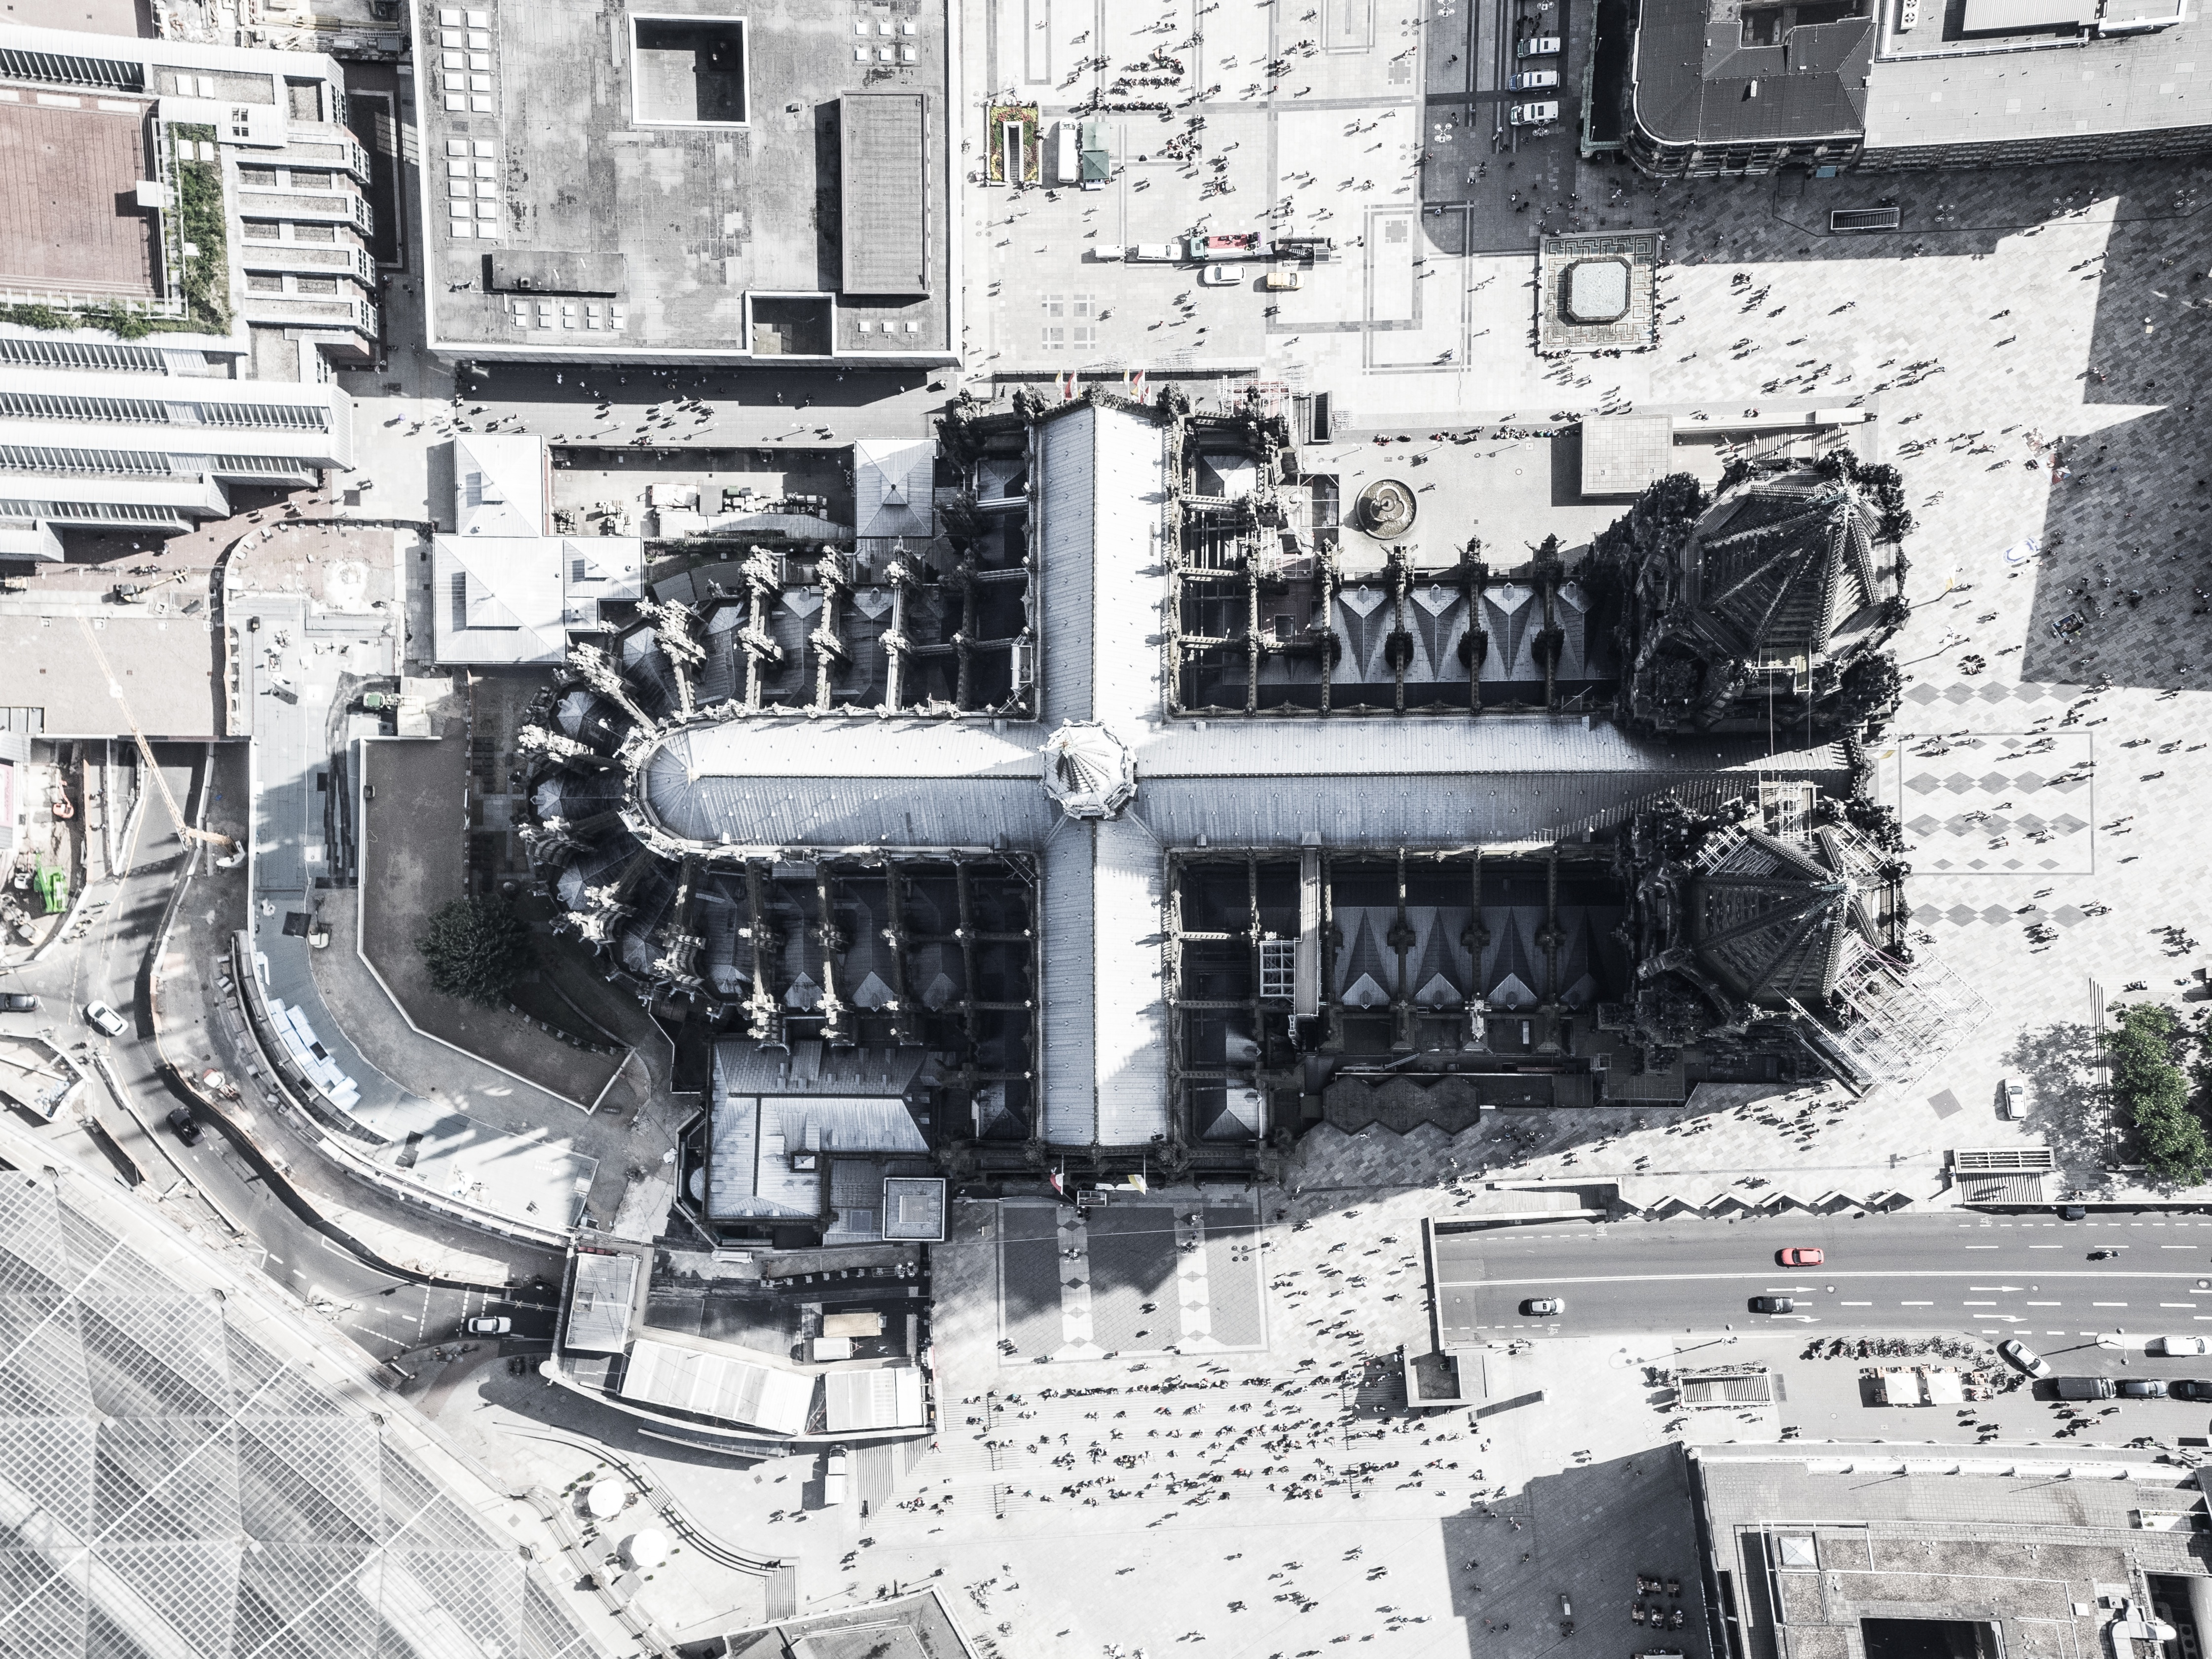 Aerial view photo